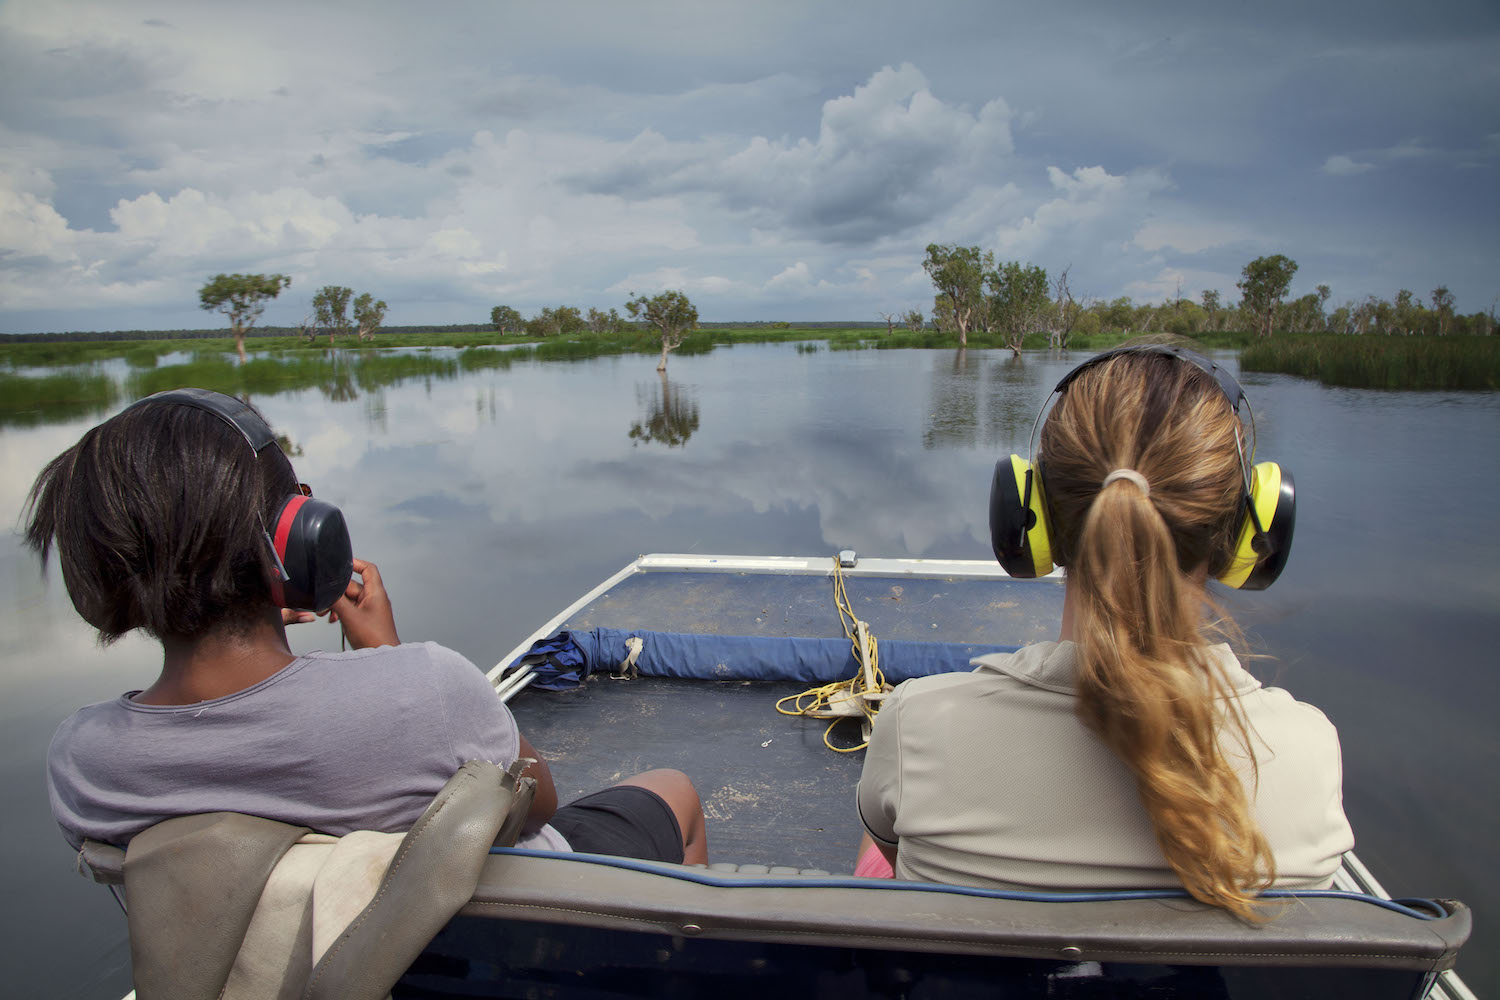 View wildlife on an airboat safari with a luxury vacation in Australia at Bamurru plains